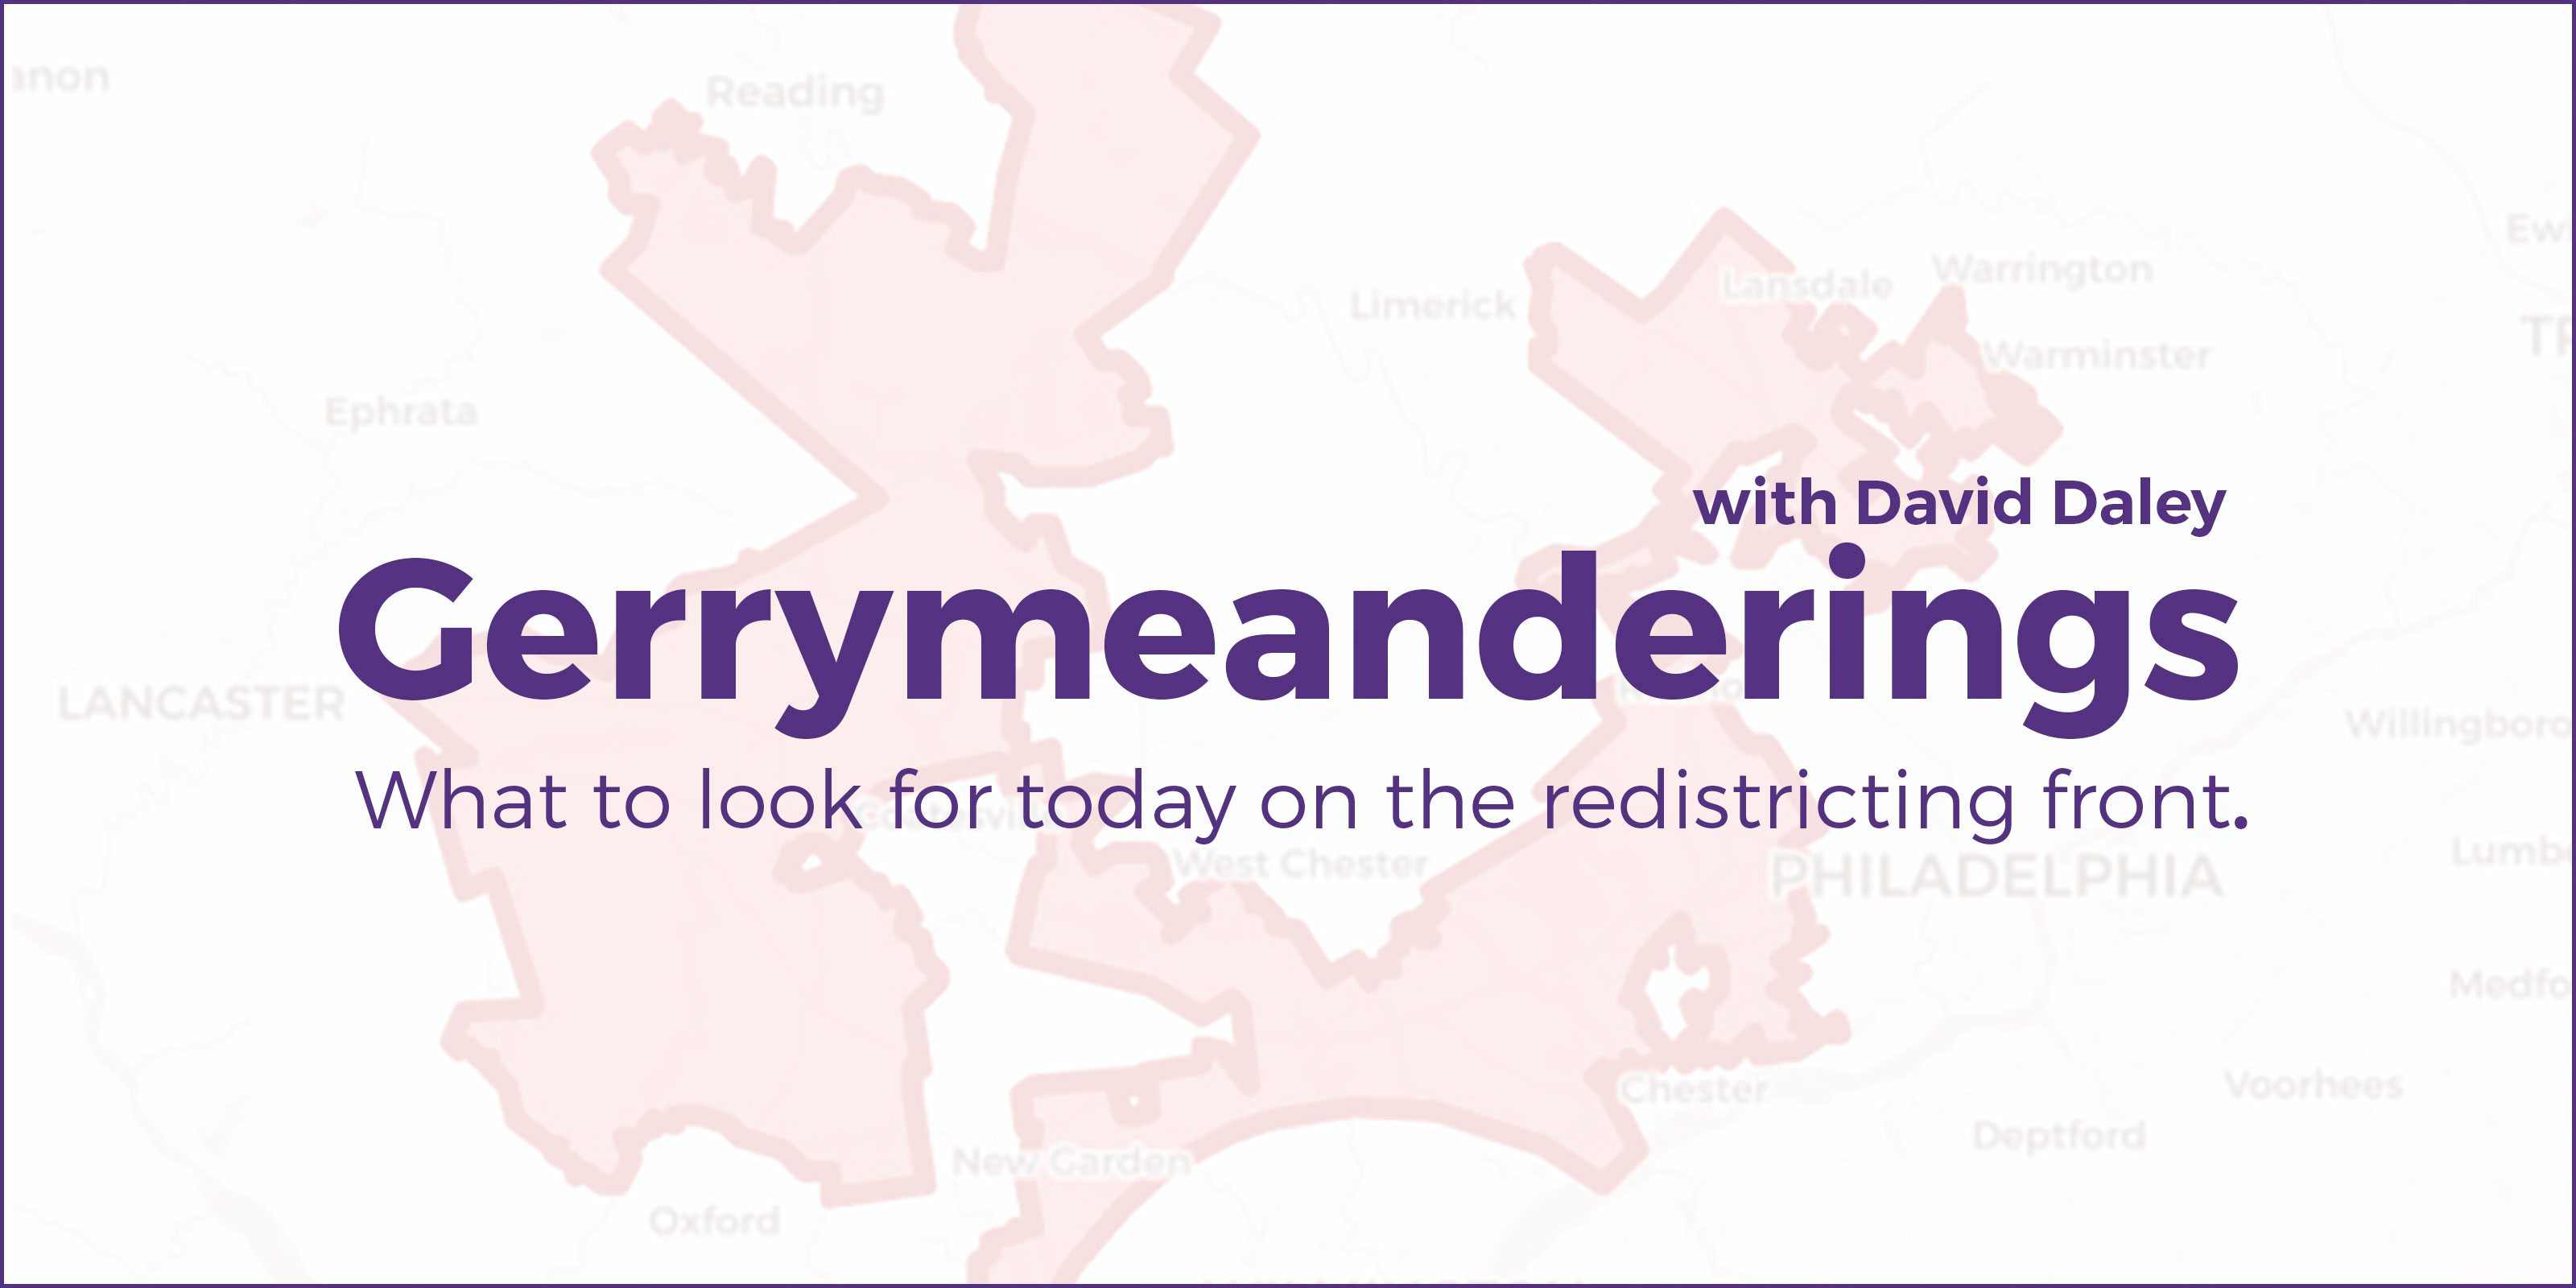 Might a Democratic gerrymander in Maryland prove key to reining in partisan gerrymandering?